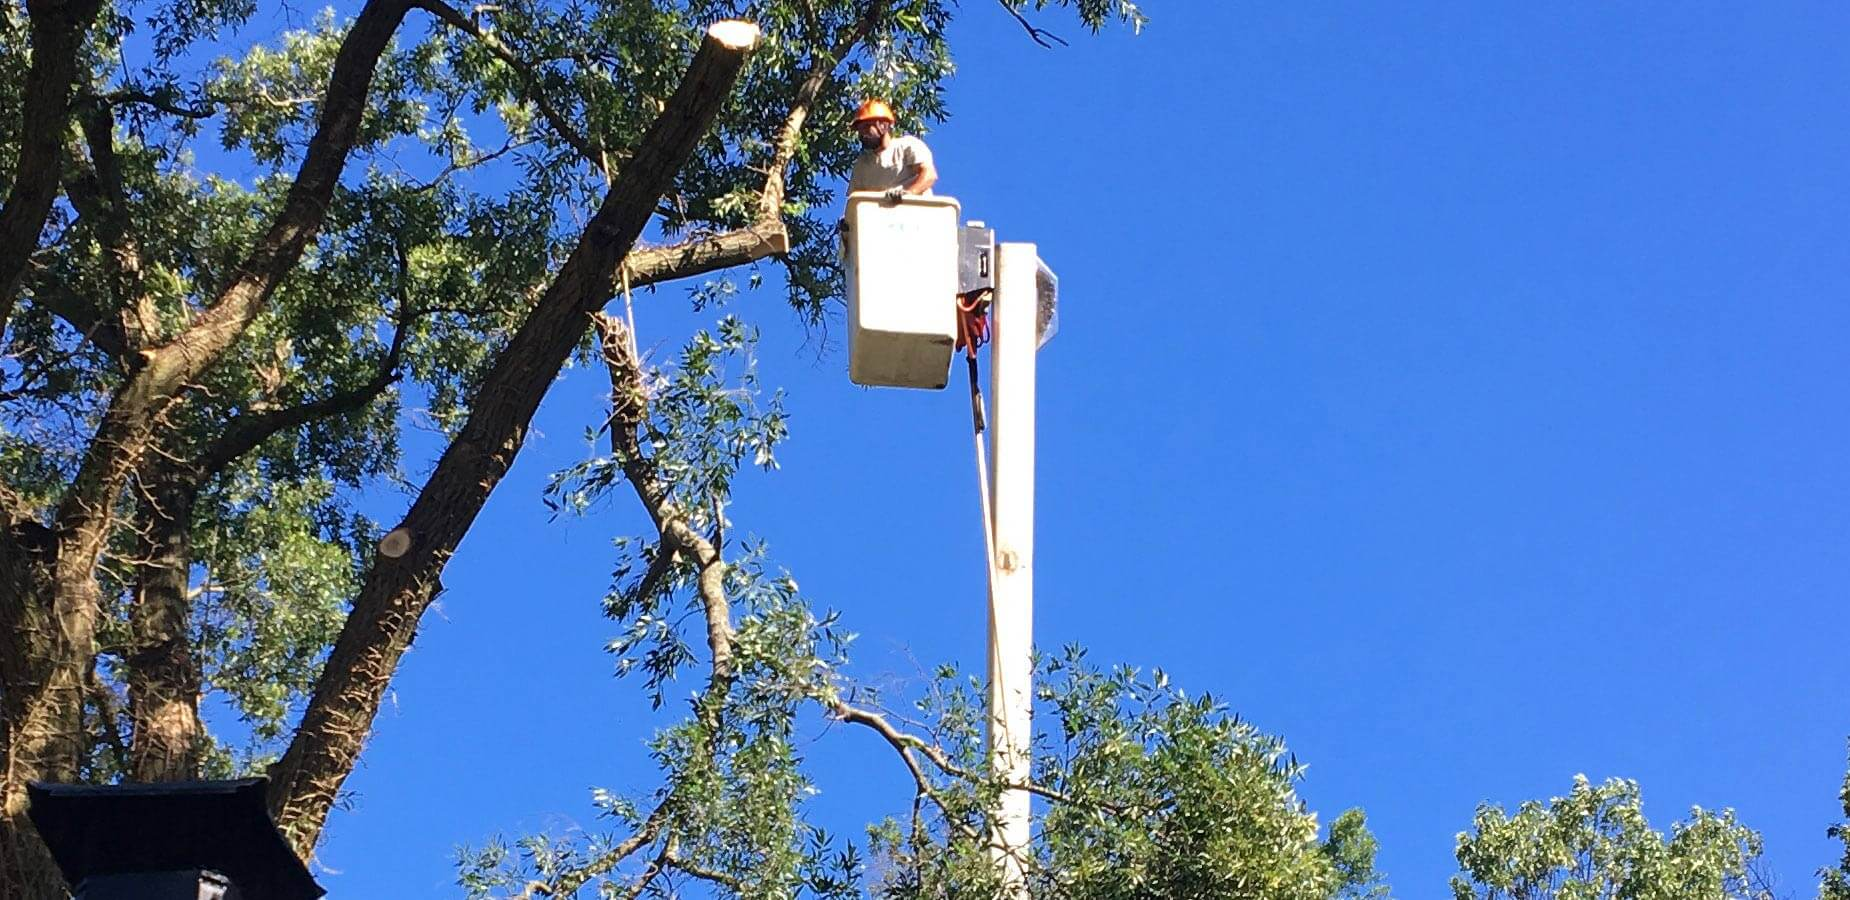 Commercial Tree Services-Palm Beach Island Tree Trimming and Tree Removal Services-We Offer Tree Trimming Services, Tree Removal, Tree Pruning, Tree Cutting, Residential and Commercial Tree Trimming Services, Storm Damage, Emergency Tree Removal, Land Clearing, Tree Companies, Tree Care Service, Stump Grinding, and we're the Best Tree Trimming Company Near You Guaranteed!